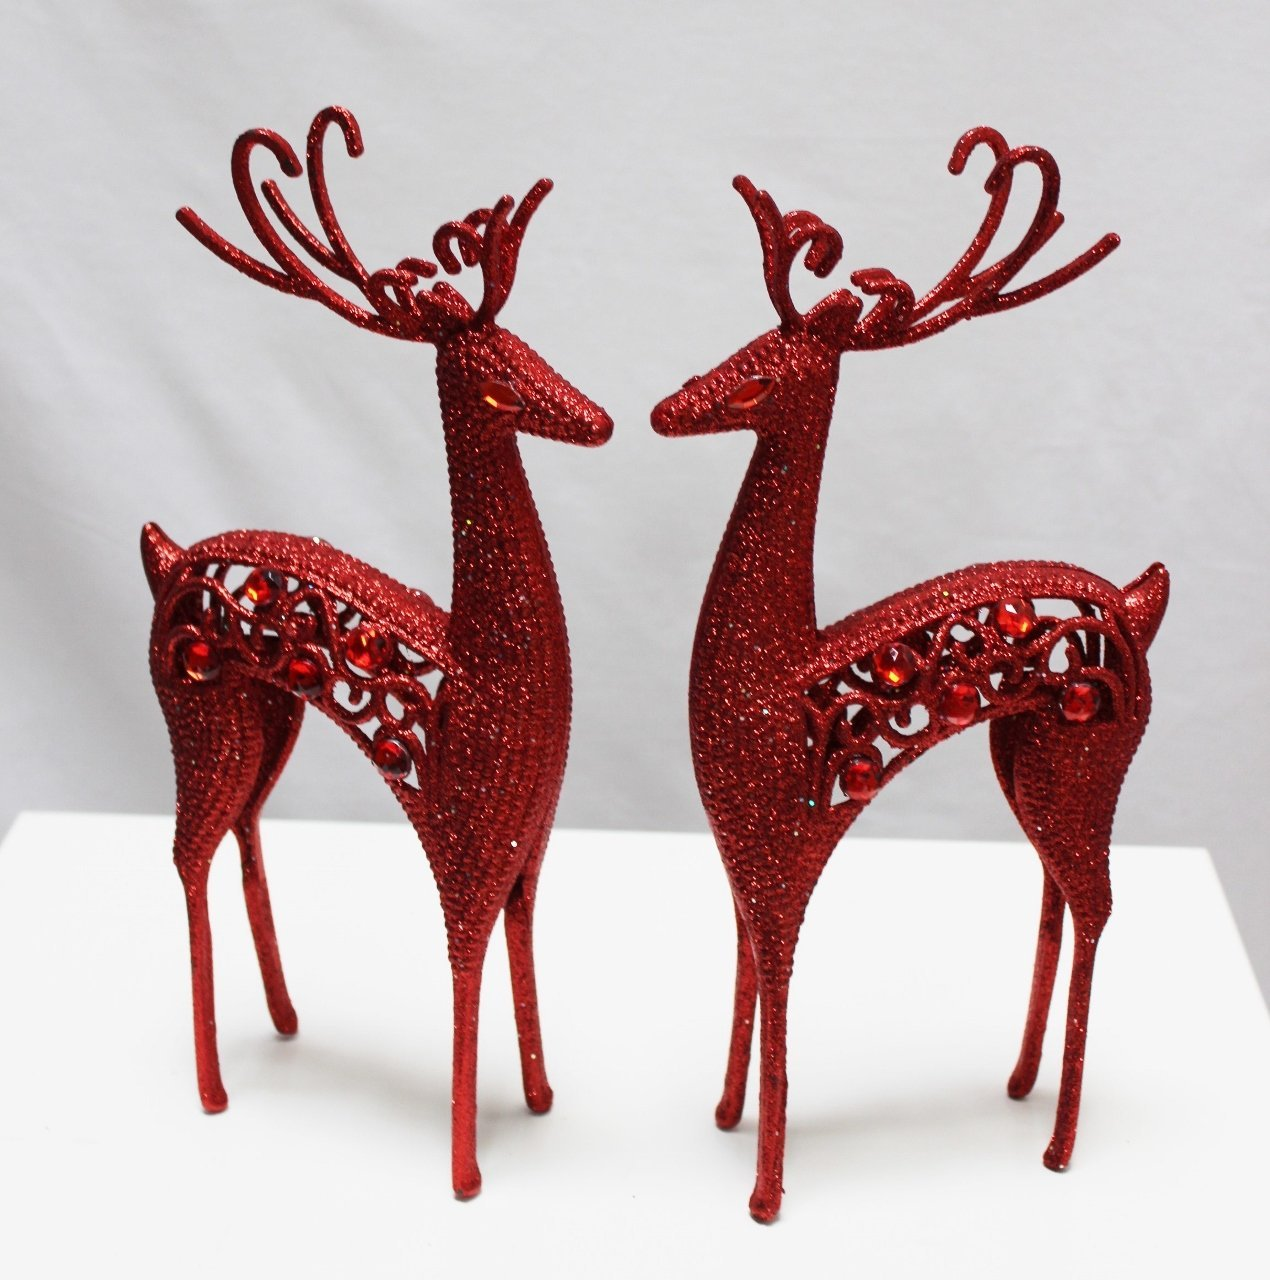 Plastic Reindeers Table decoration 25 cm Assorted Colours (Red) Link Products Limited